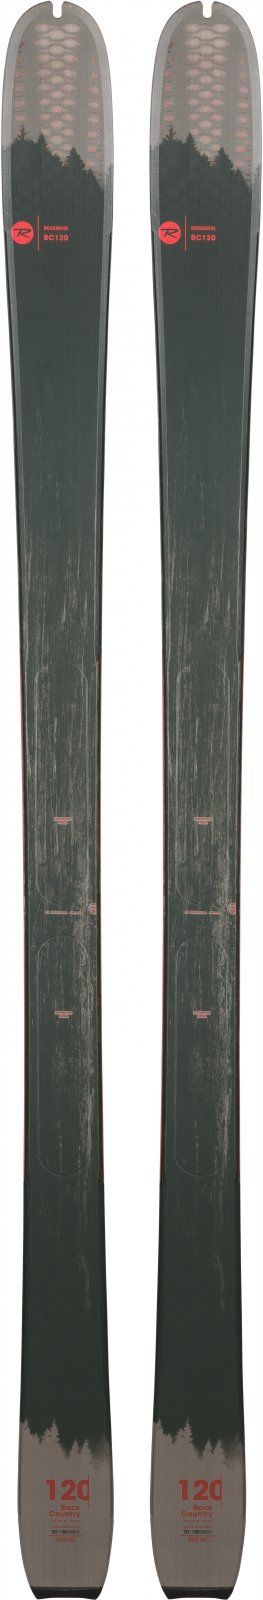 Rossignol BC 120 Waxbase Skis 2020